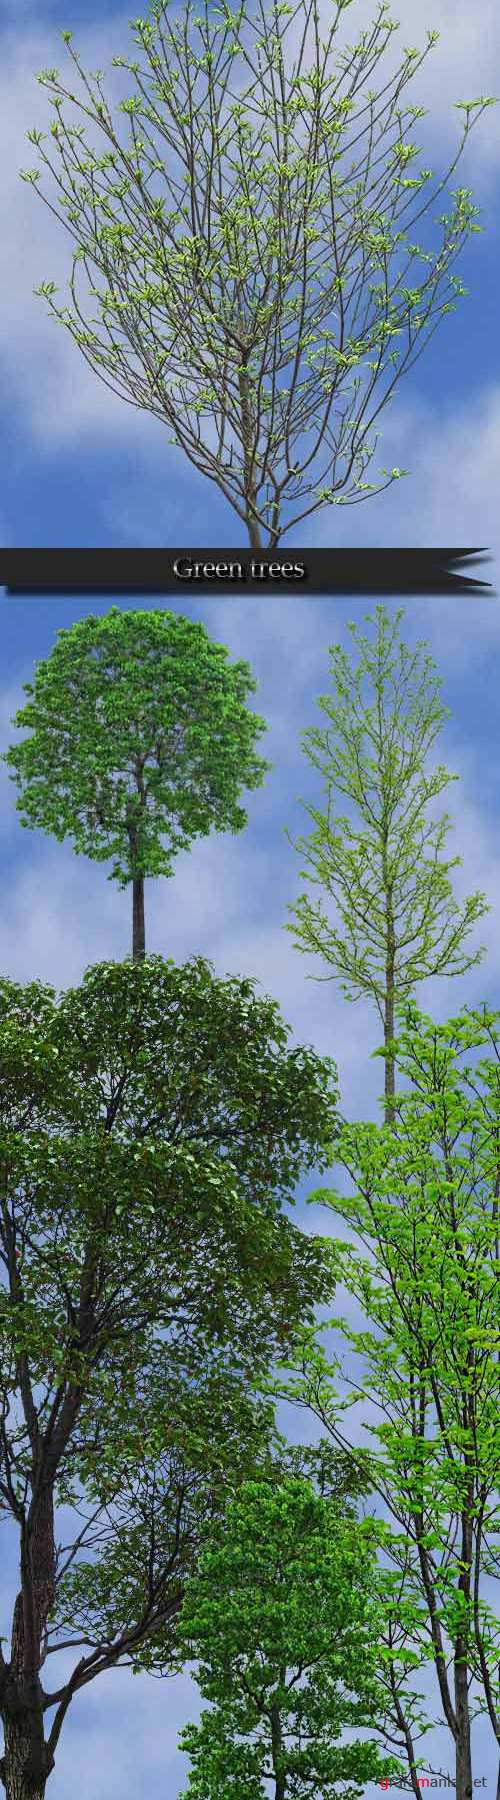 Green trees on a transparent background